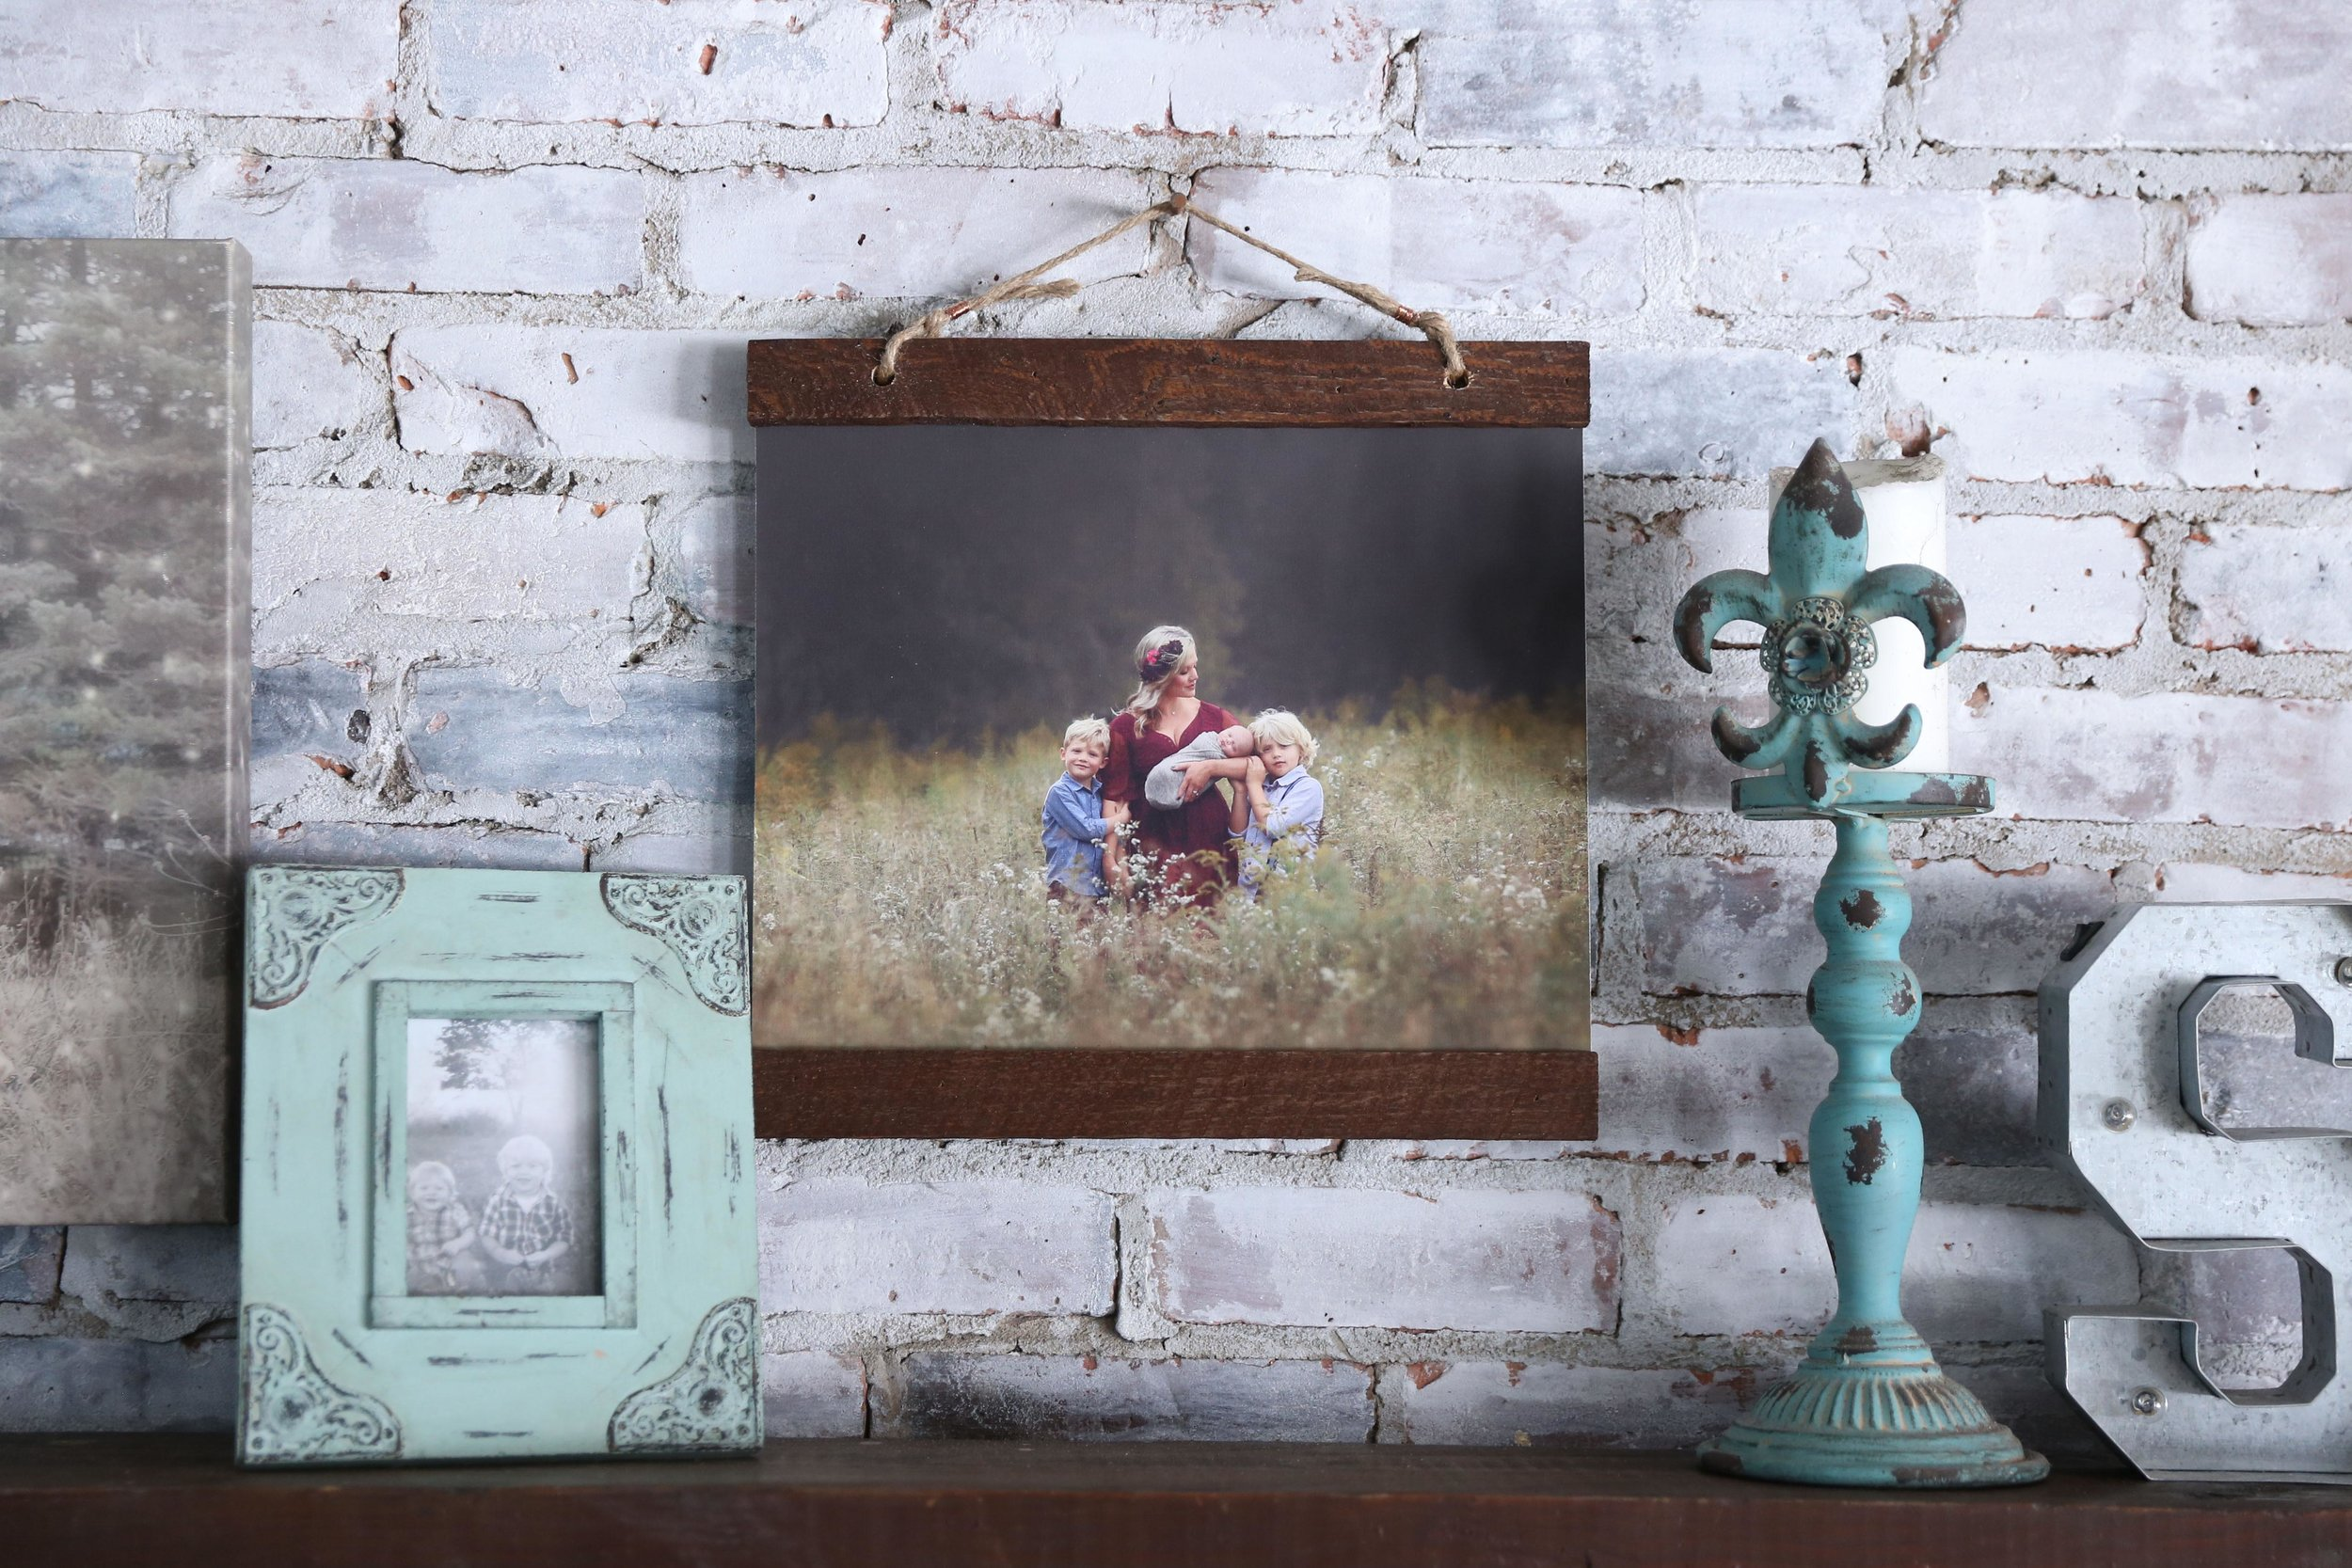 Rustic Frame - Your image printed on canvas and hung from reclaimed wood, jute, and copper.